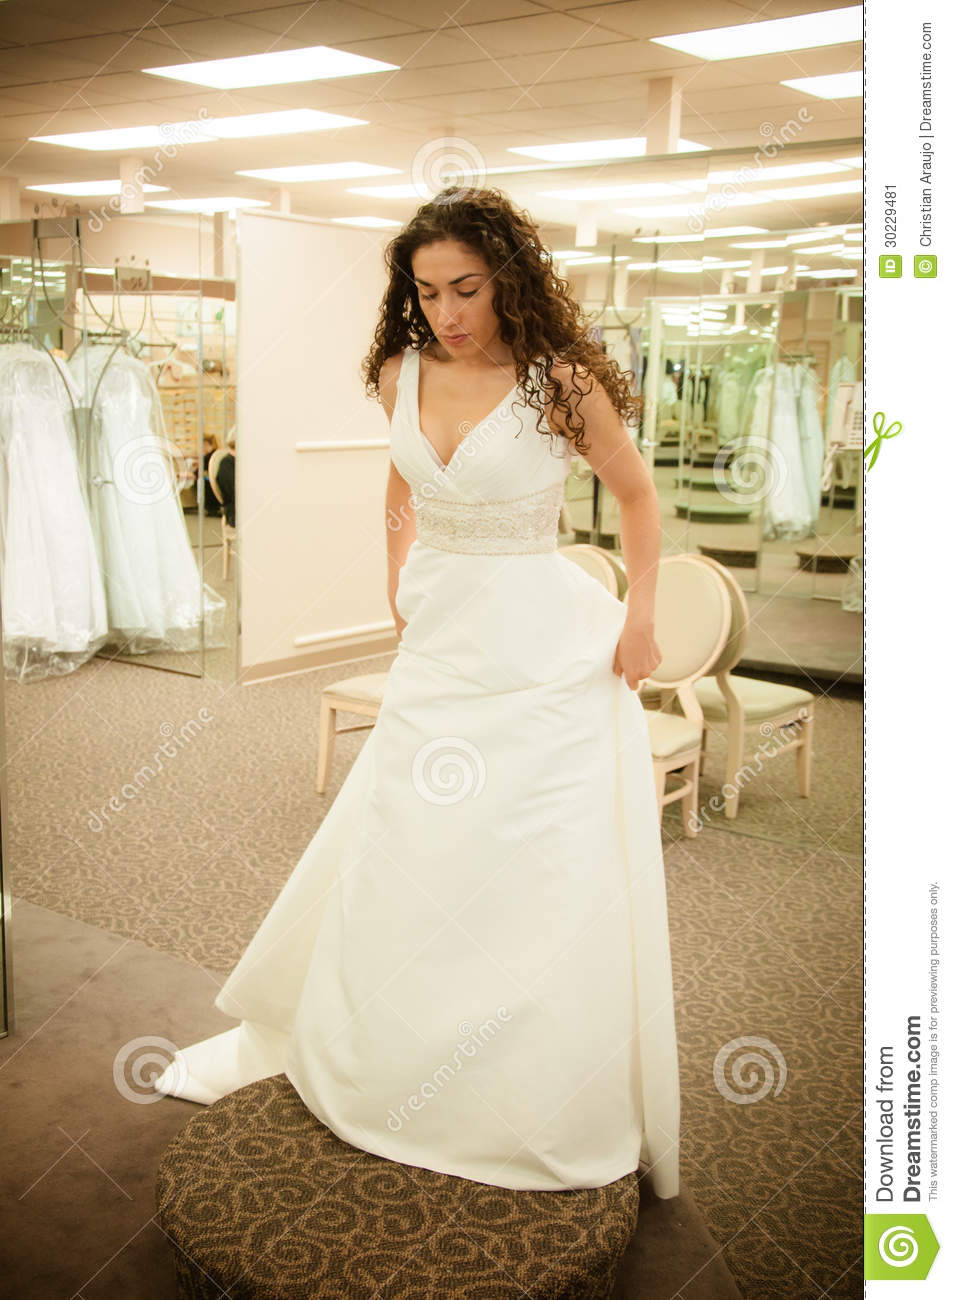 Trying wedding dress stock image image 30229481 for Wedding dress in stock